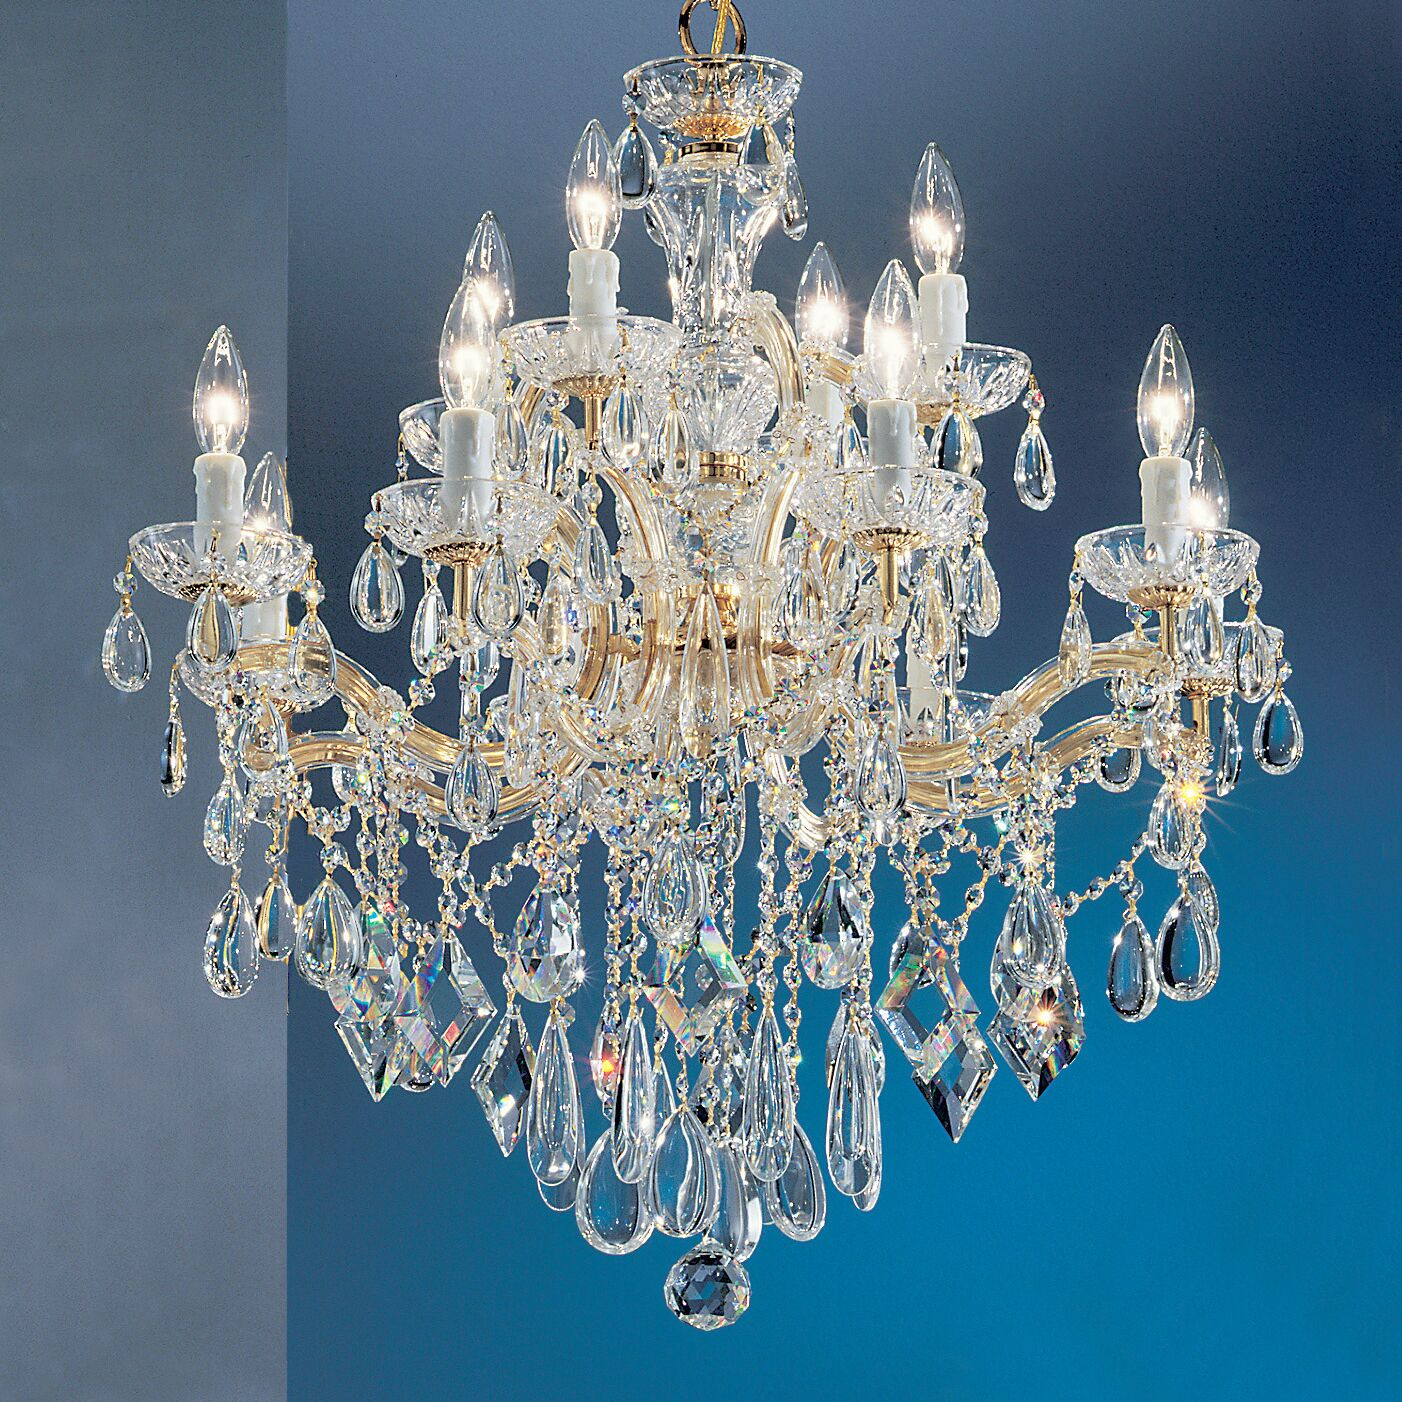 Rialto 12-Light Candle Style Chandelier Finish: Gold Plated